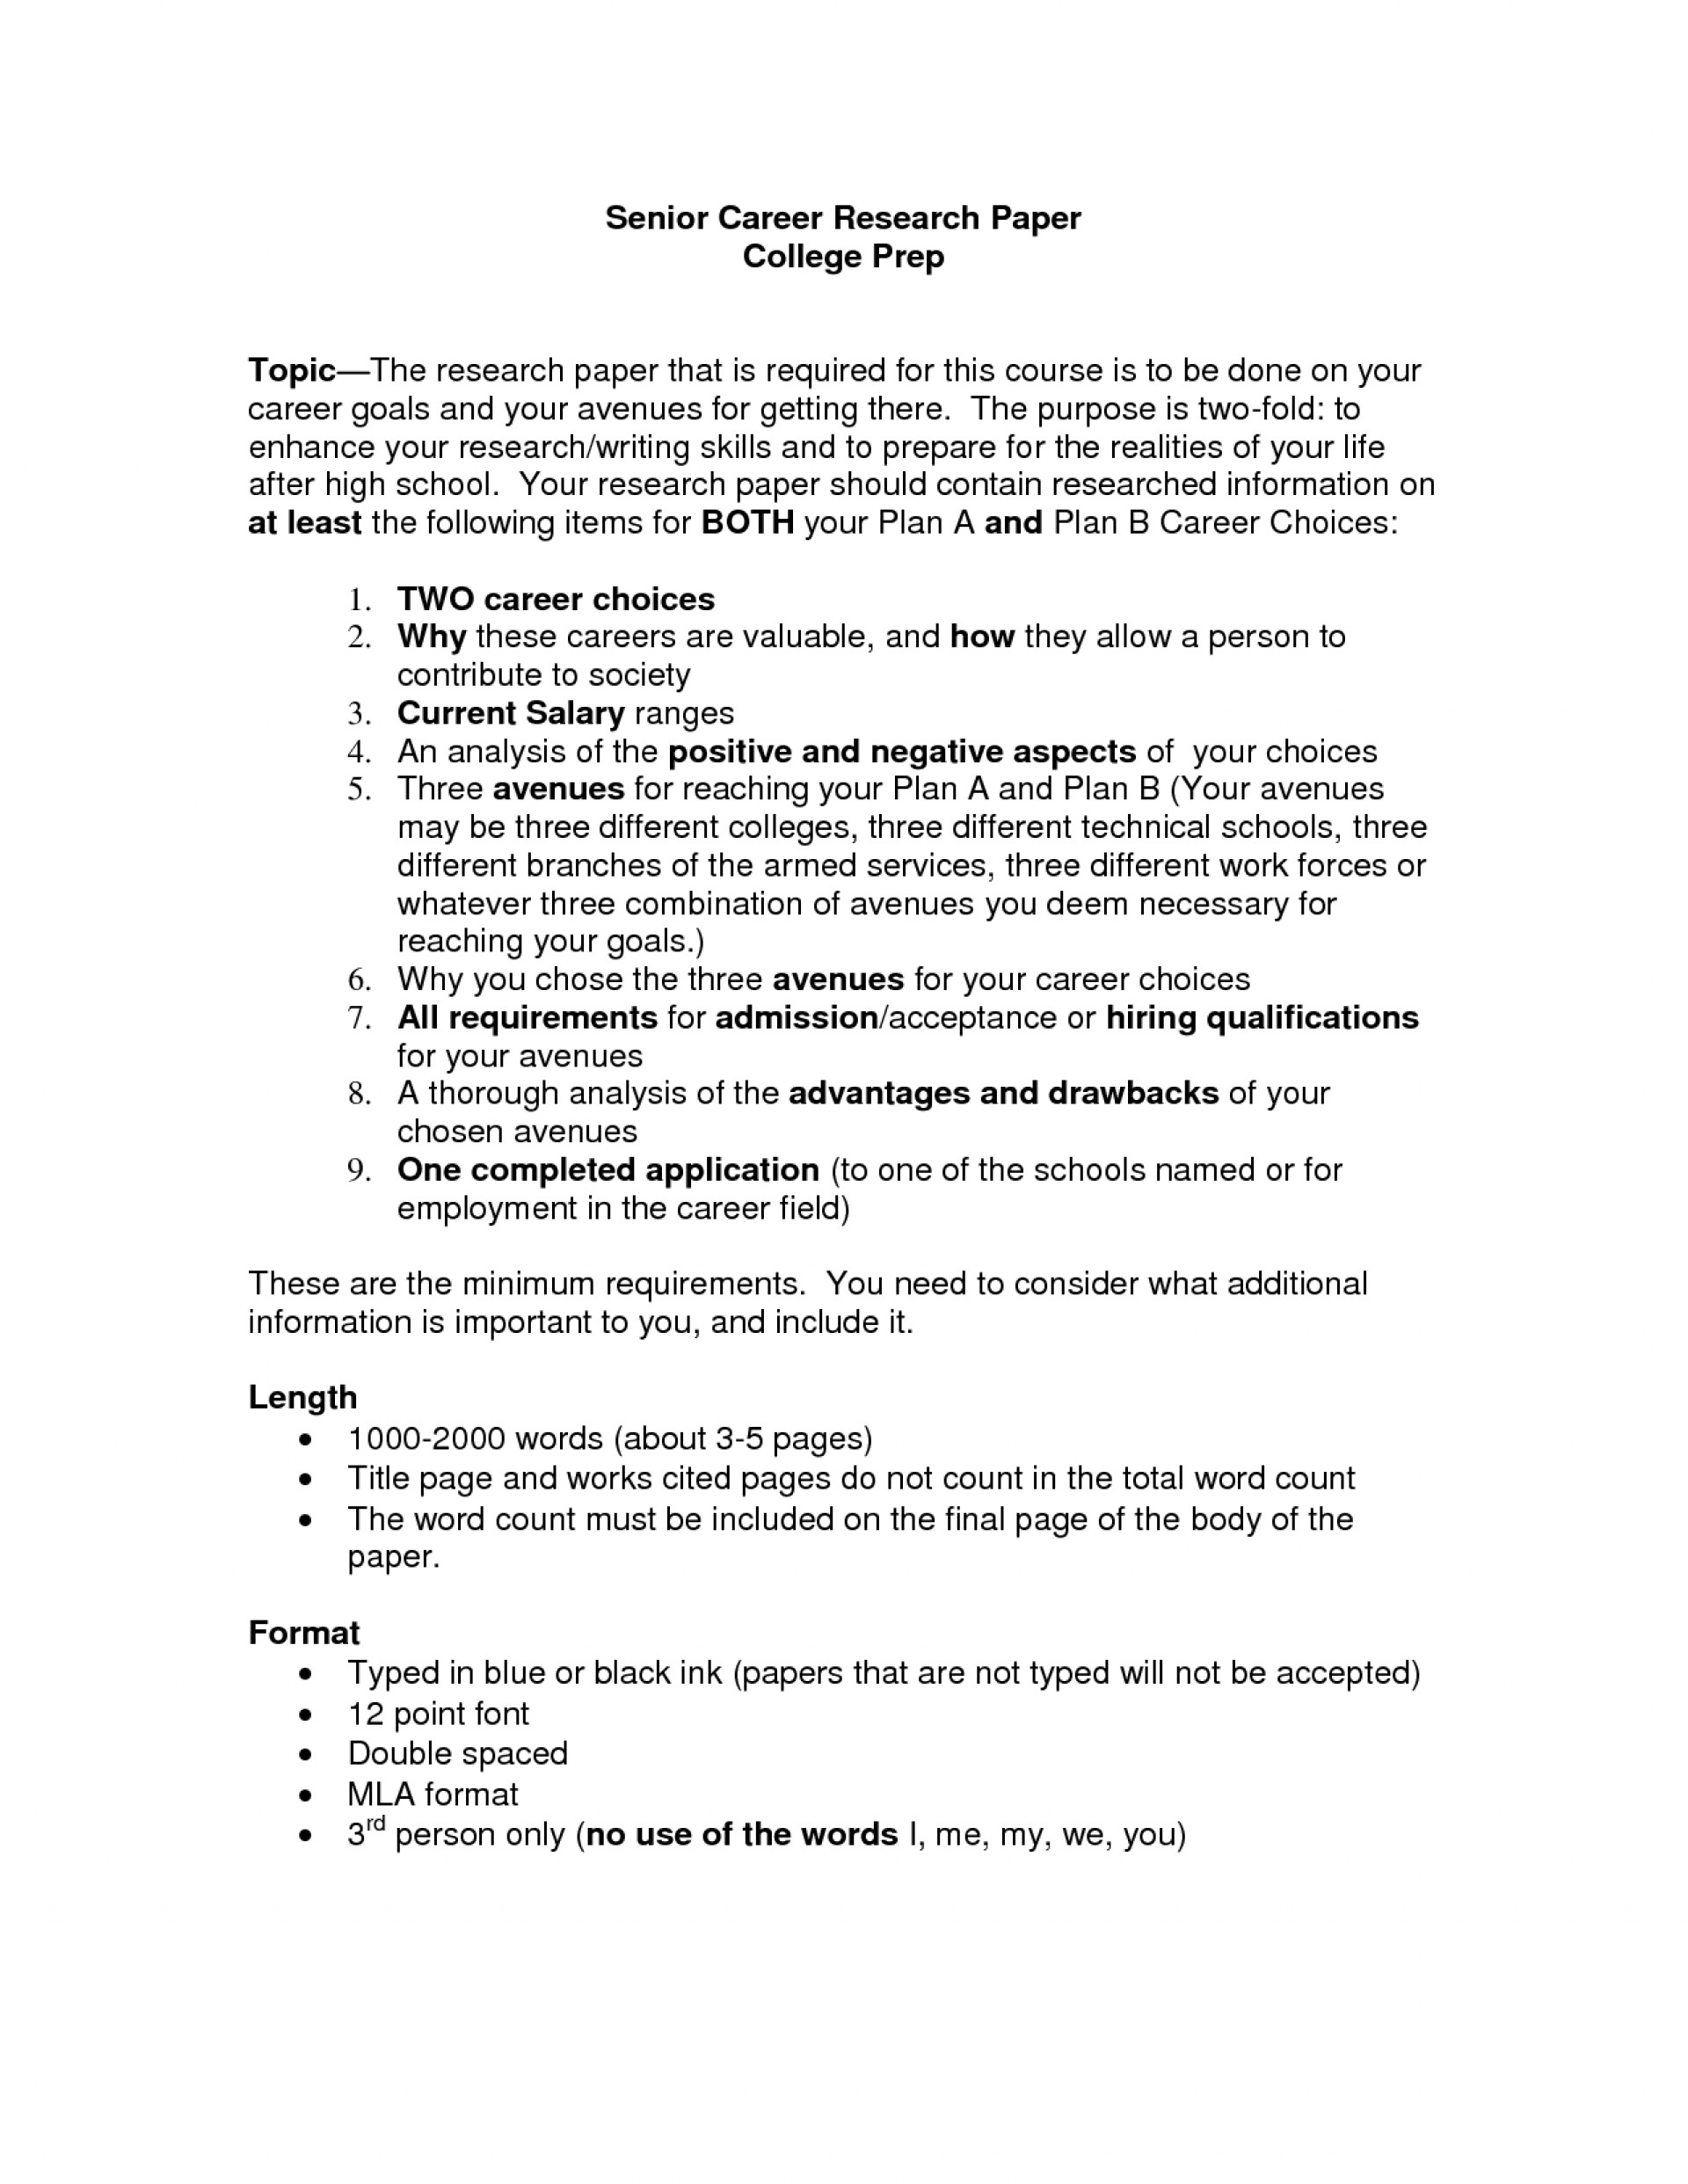 006 Career Research Paper Outline 477628 Example Top Apa 1920